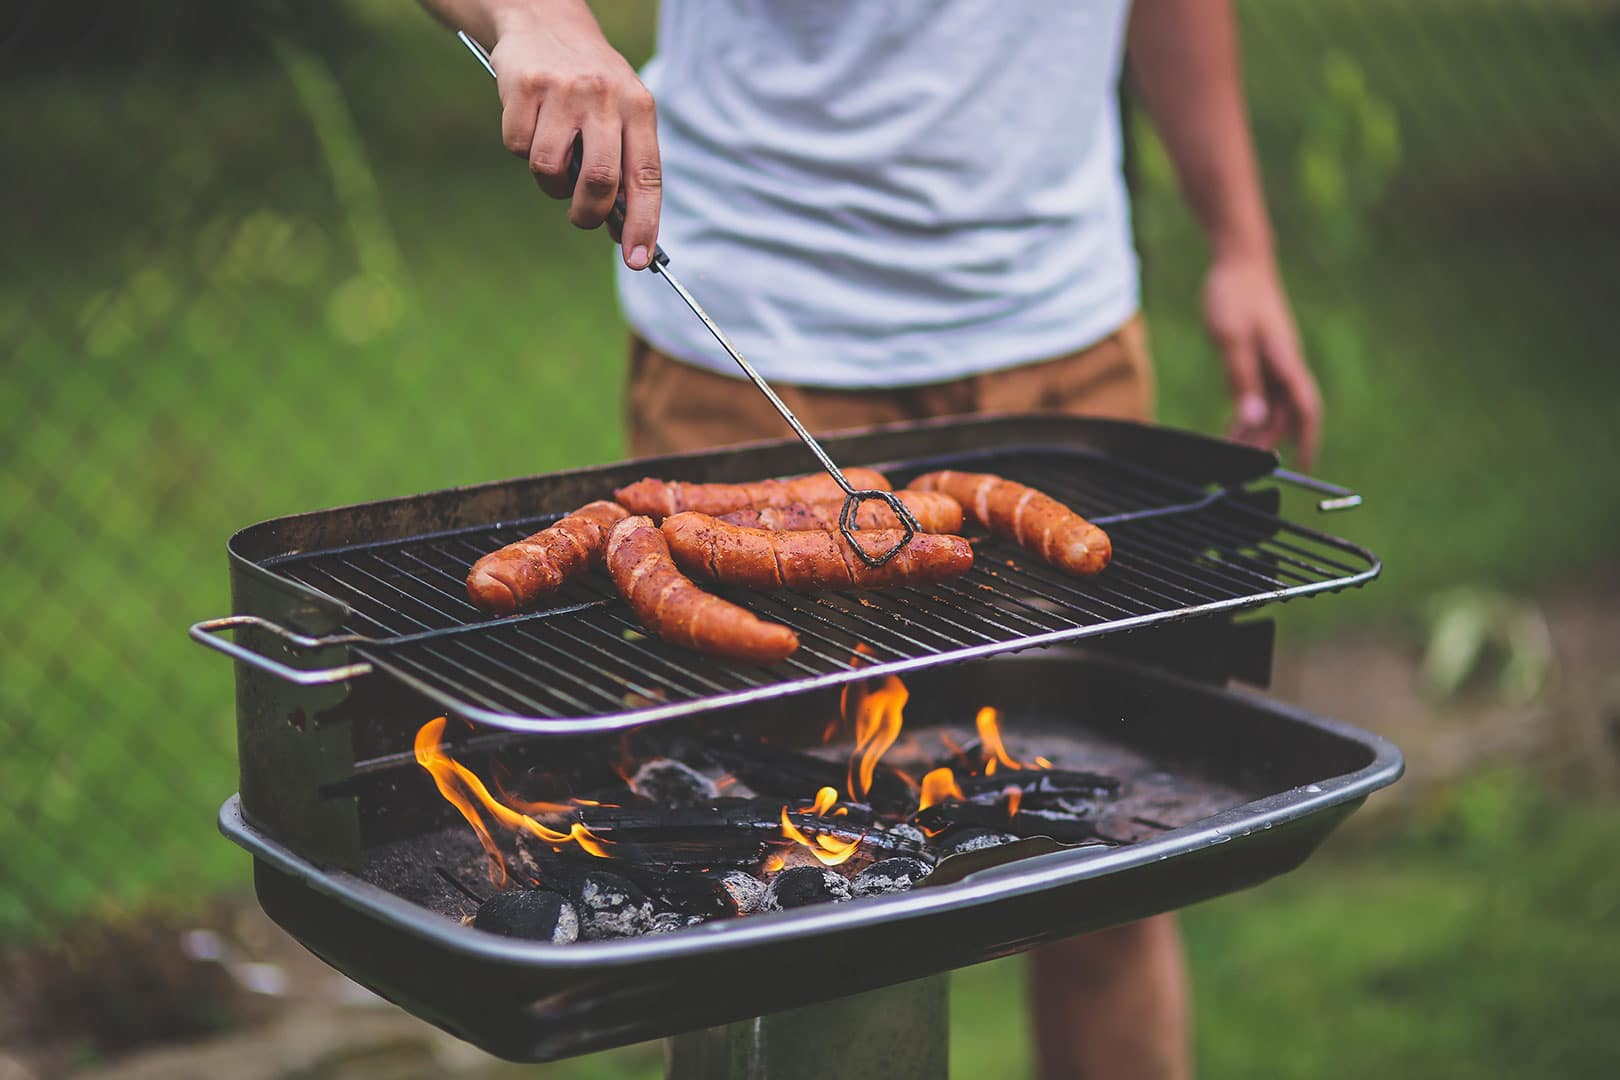 Places You Can Get Your Barbecue On